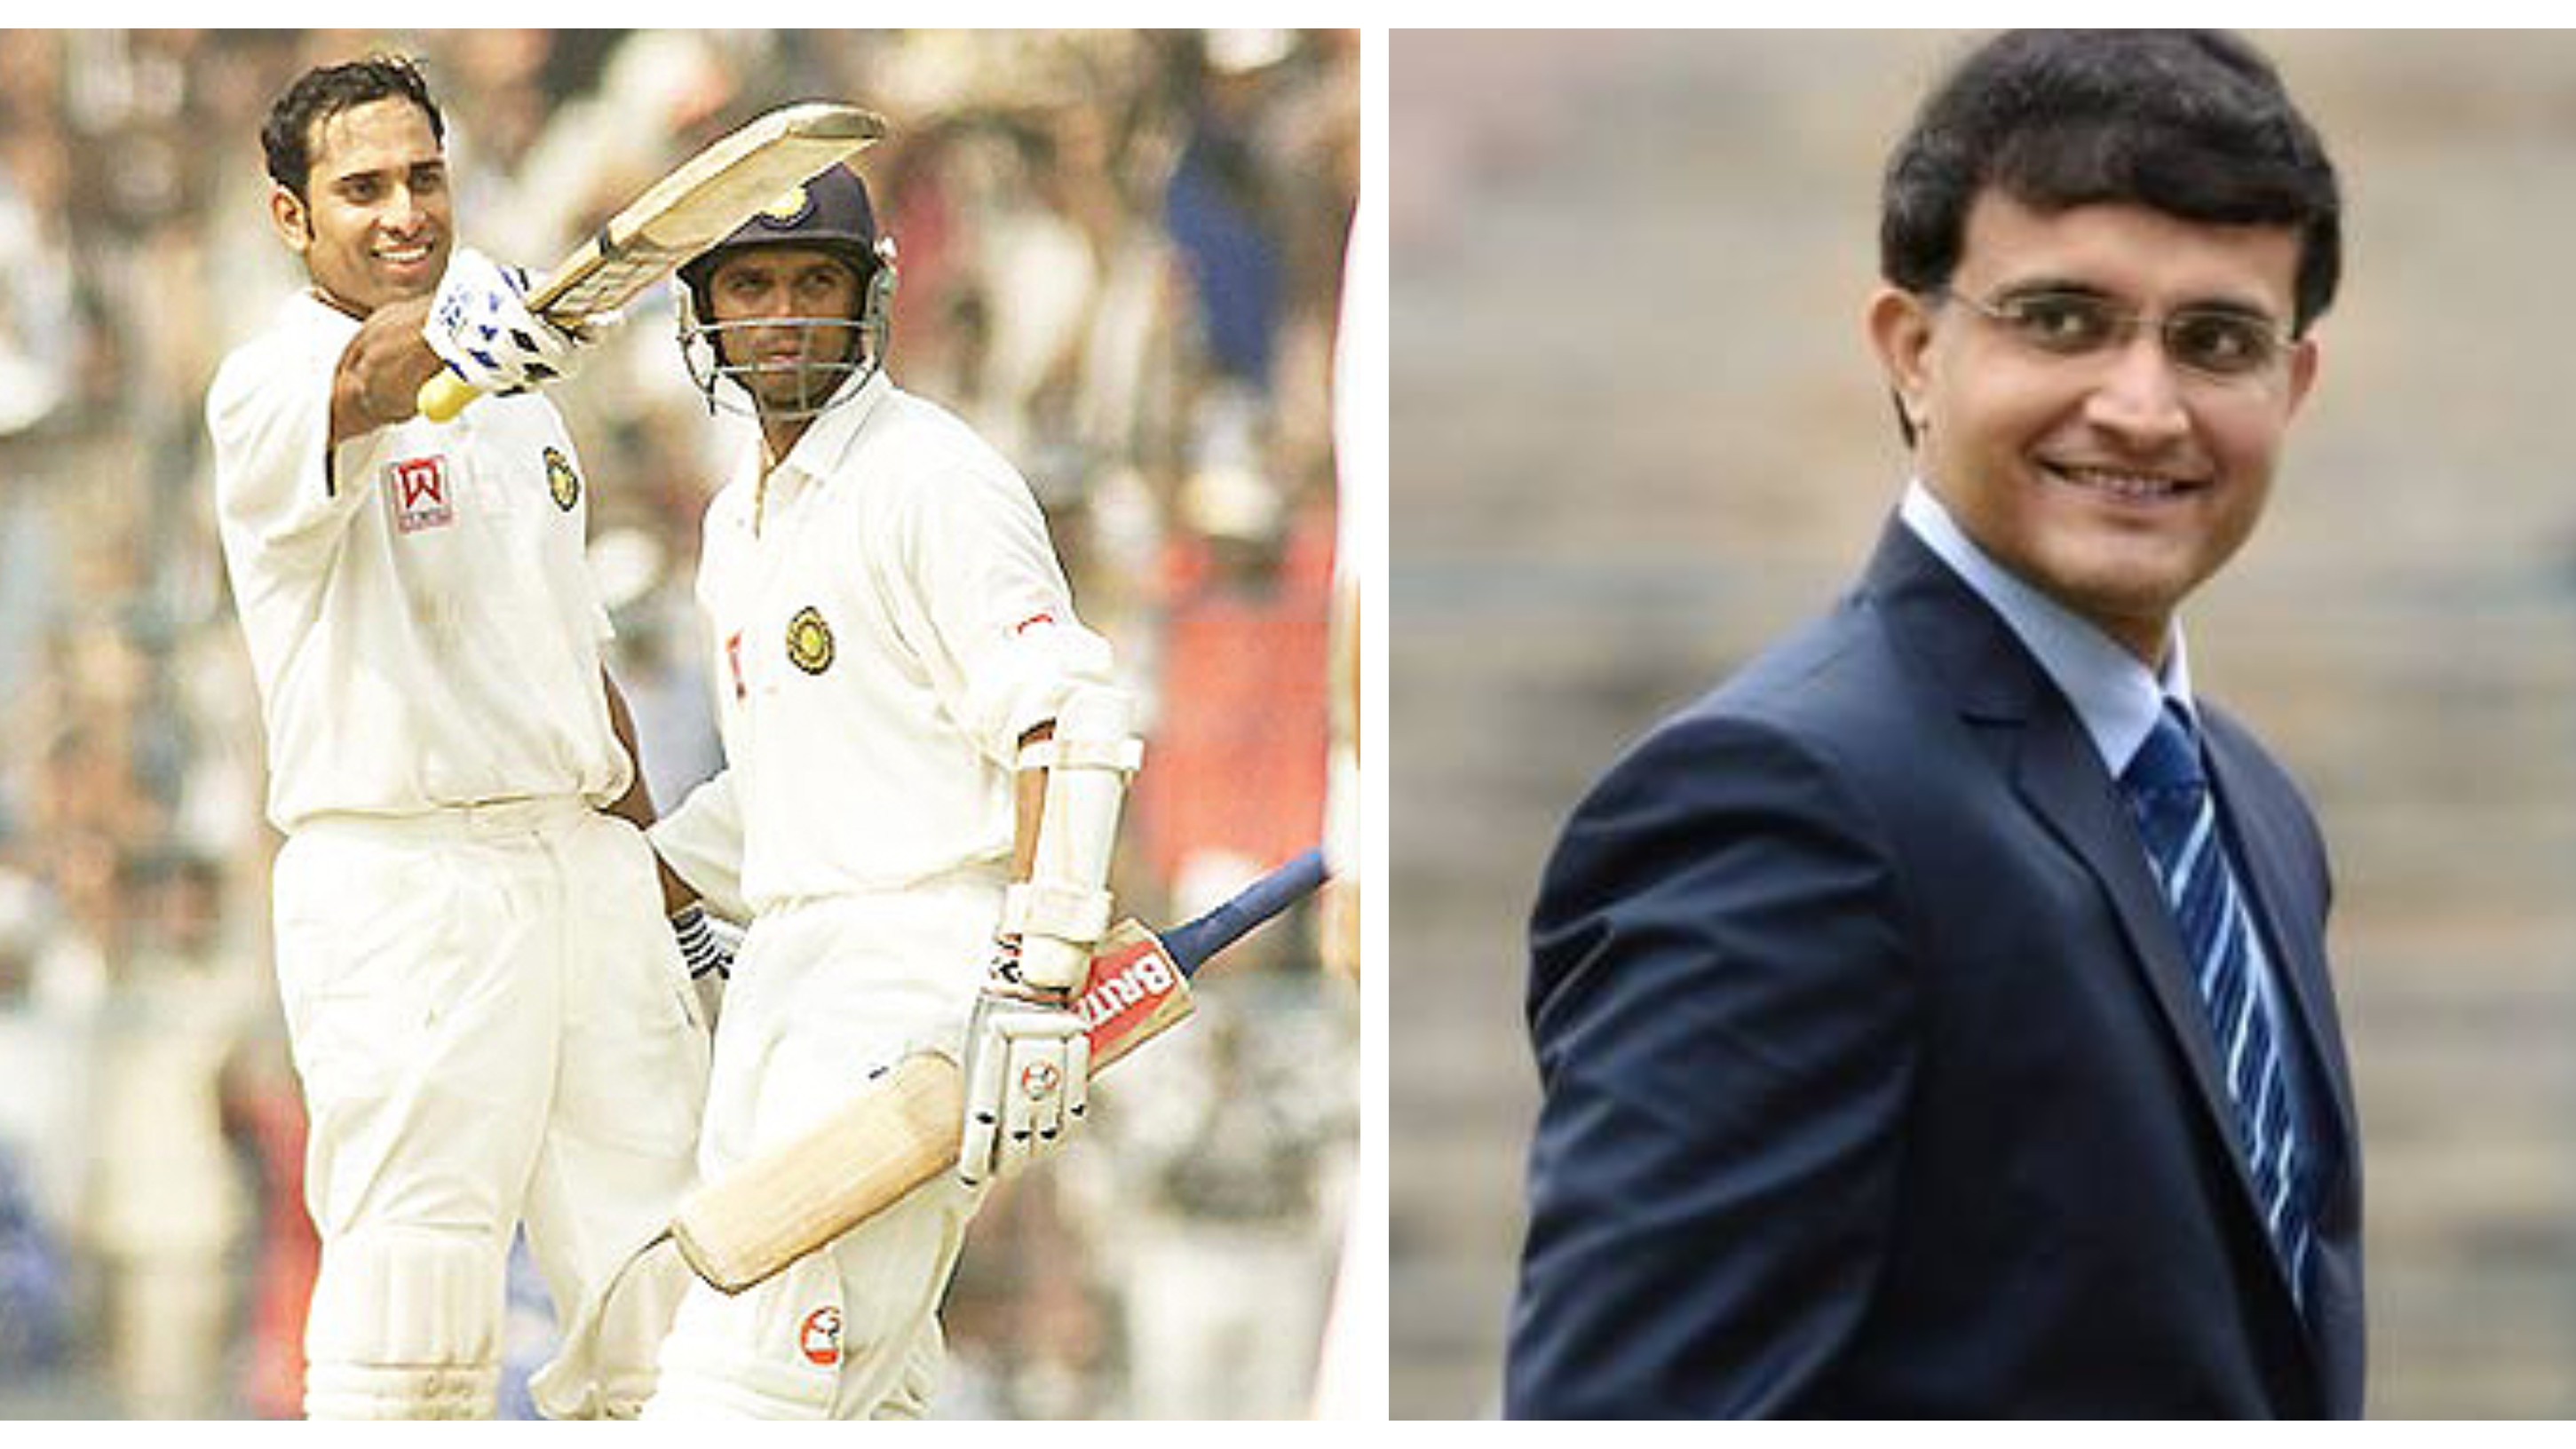 VVS Laxman's 281 saved my career, says Sourav Ganguly